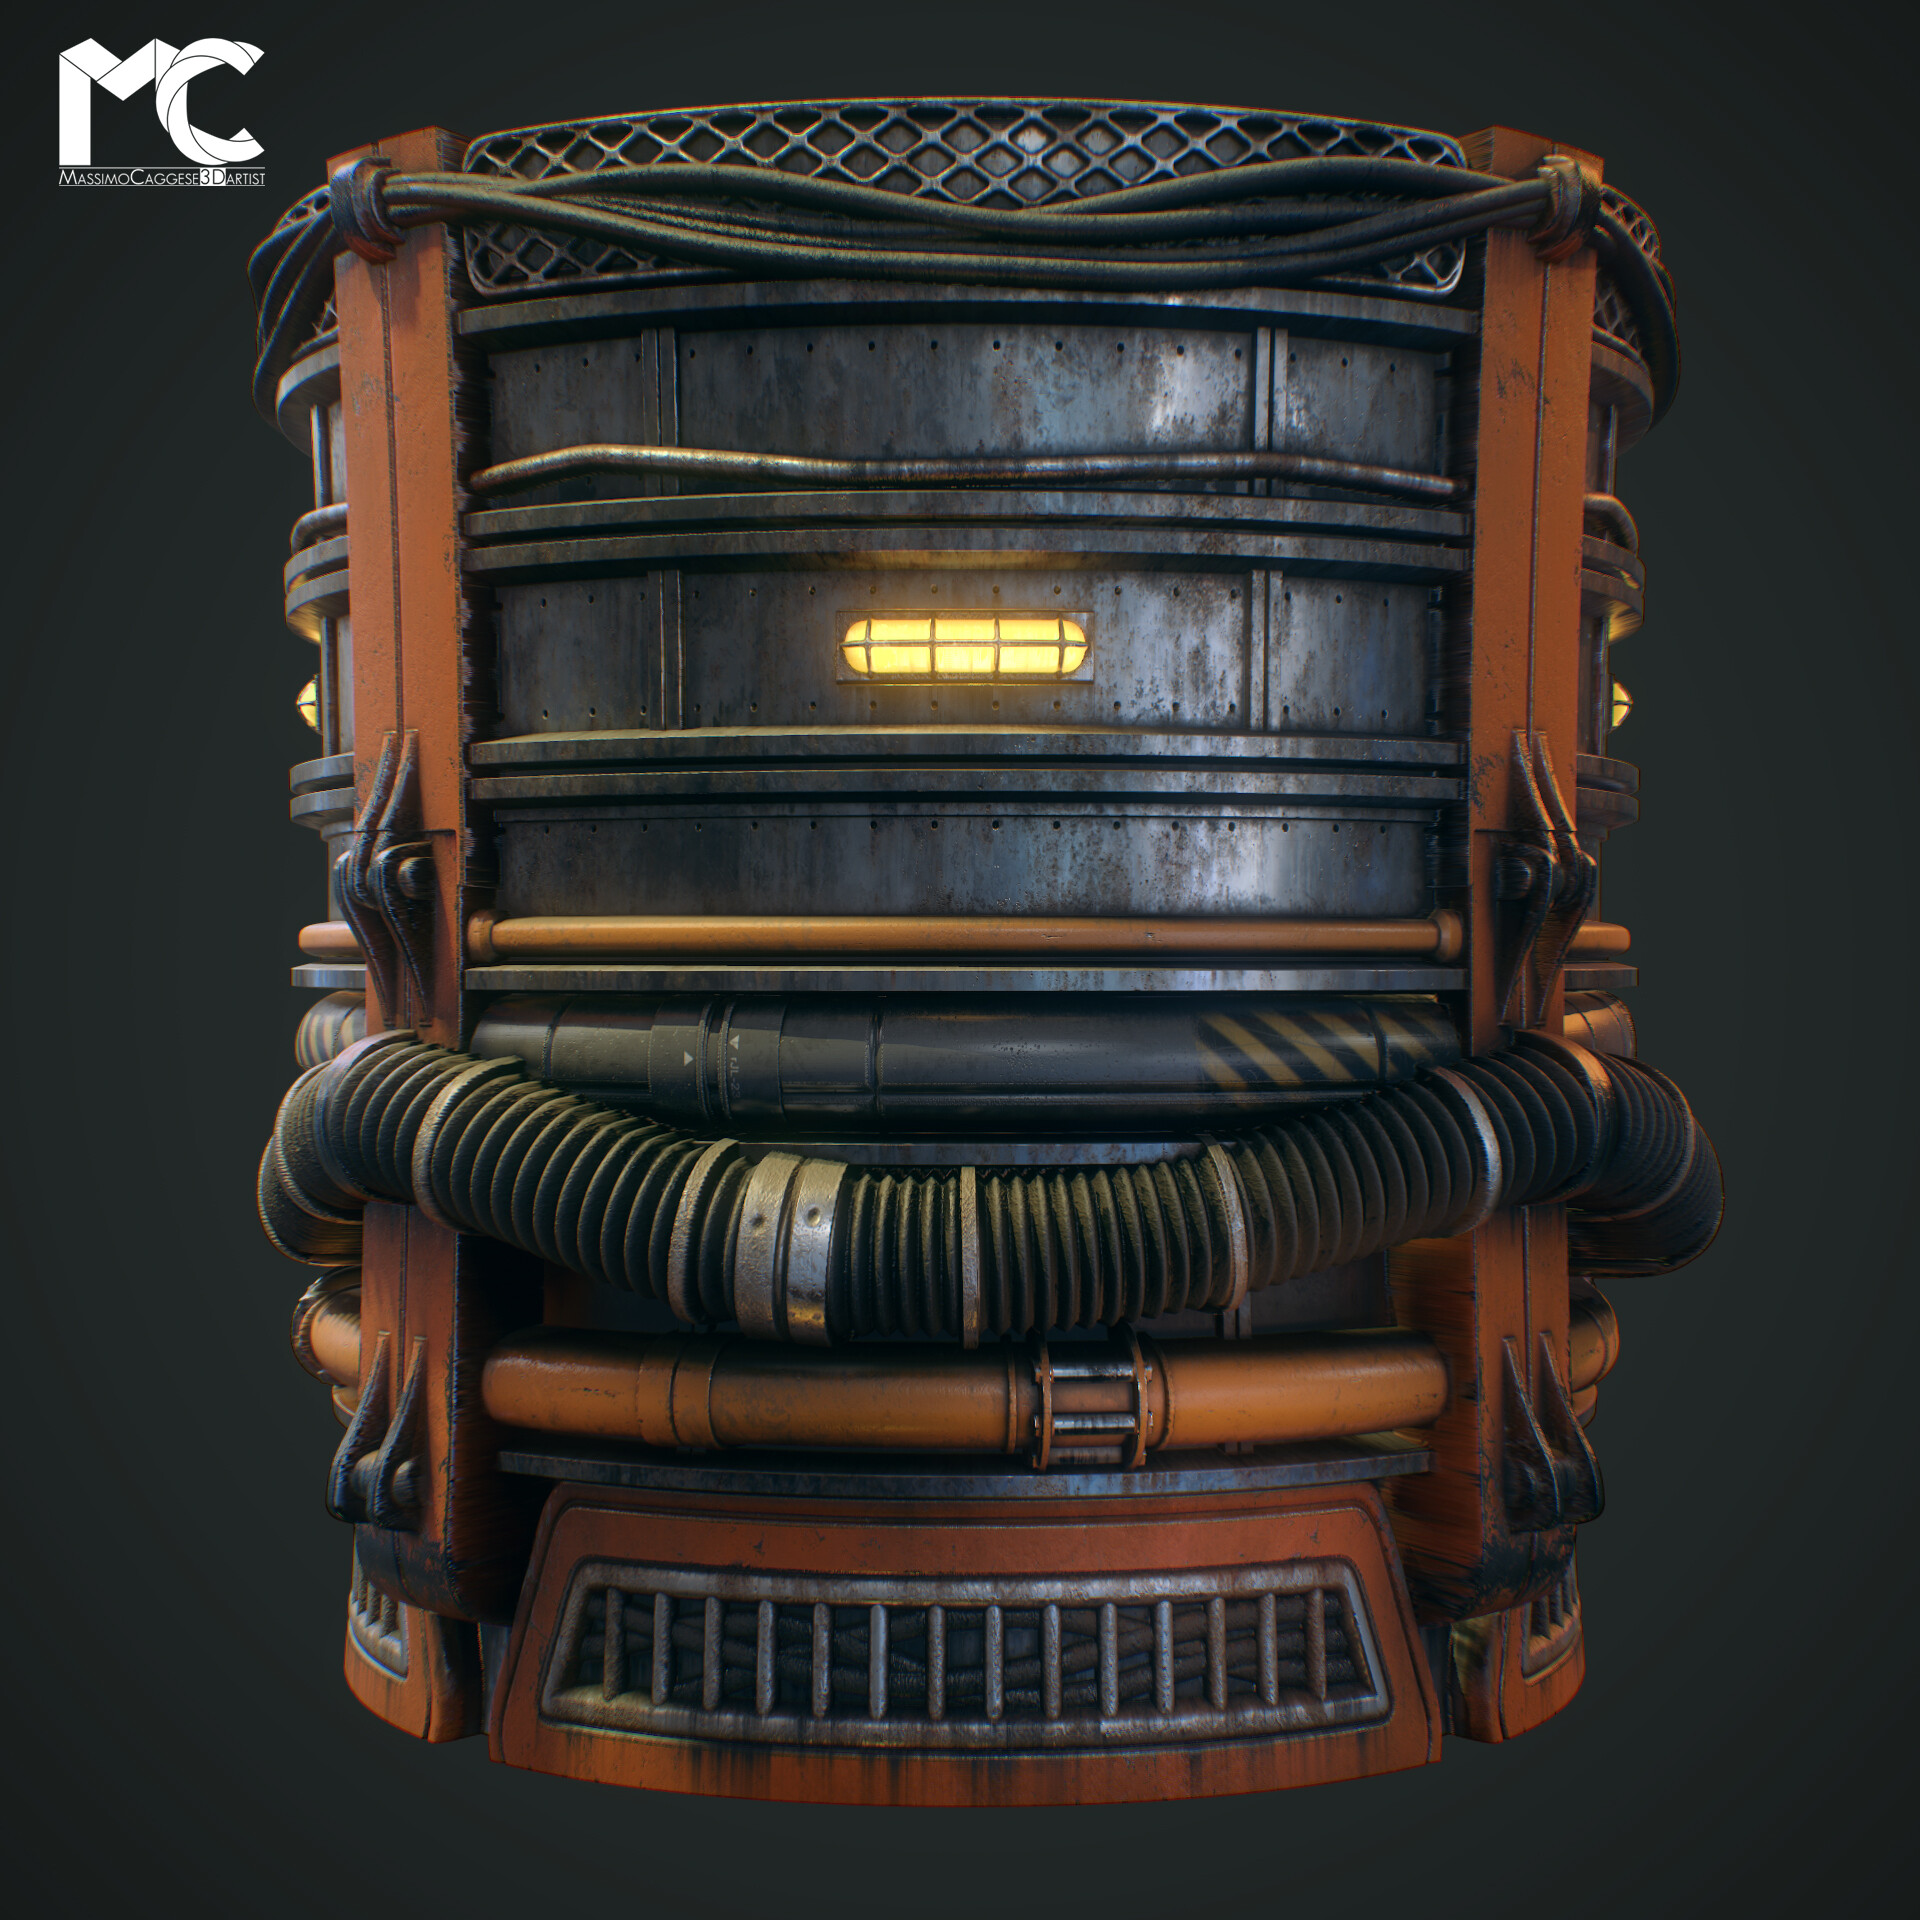 Cylnder view (Marmoset Toolbag 3).